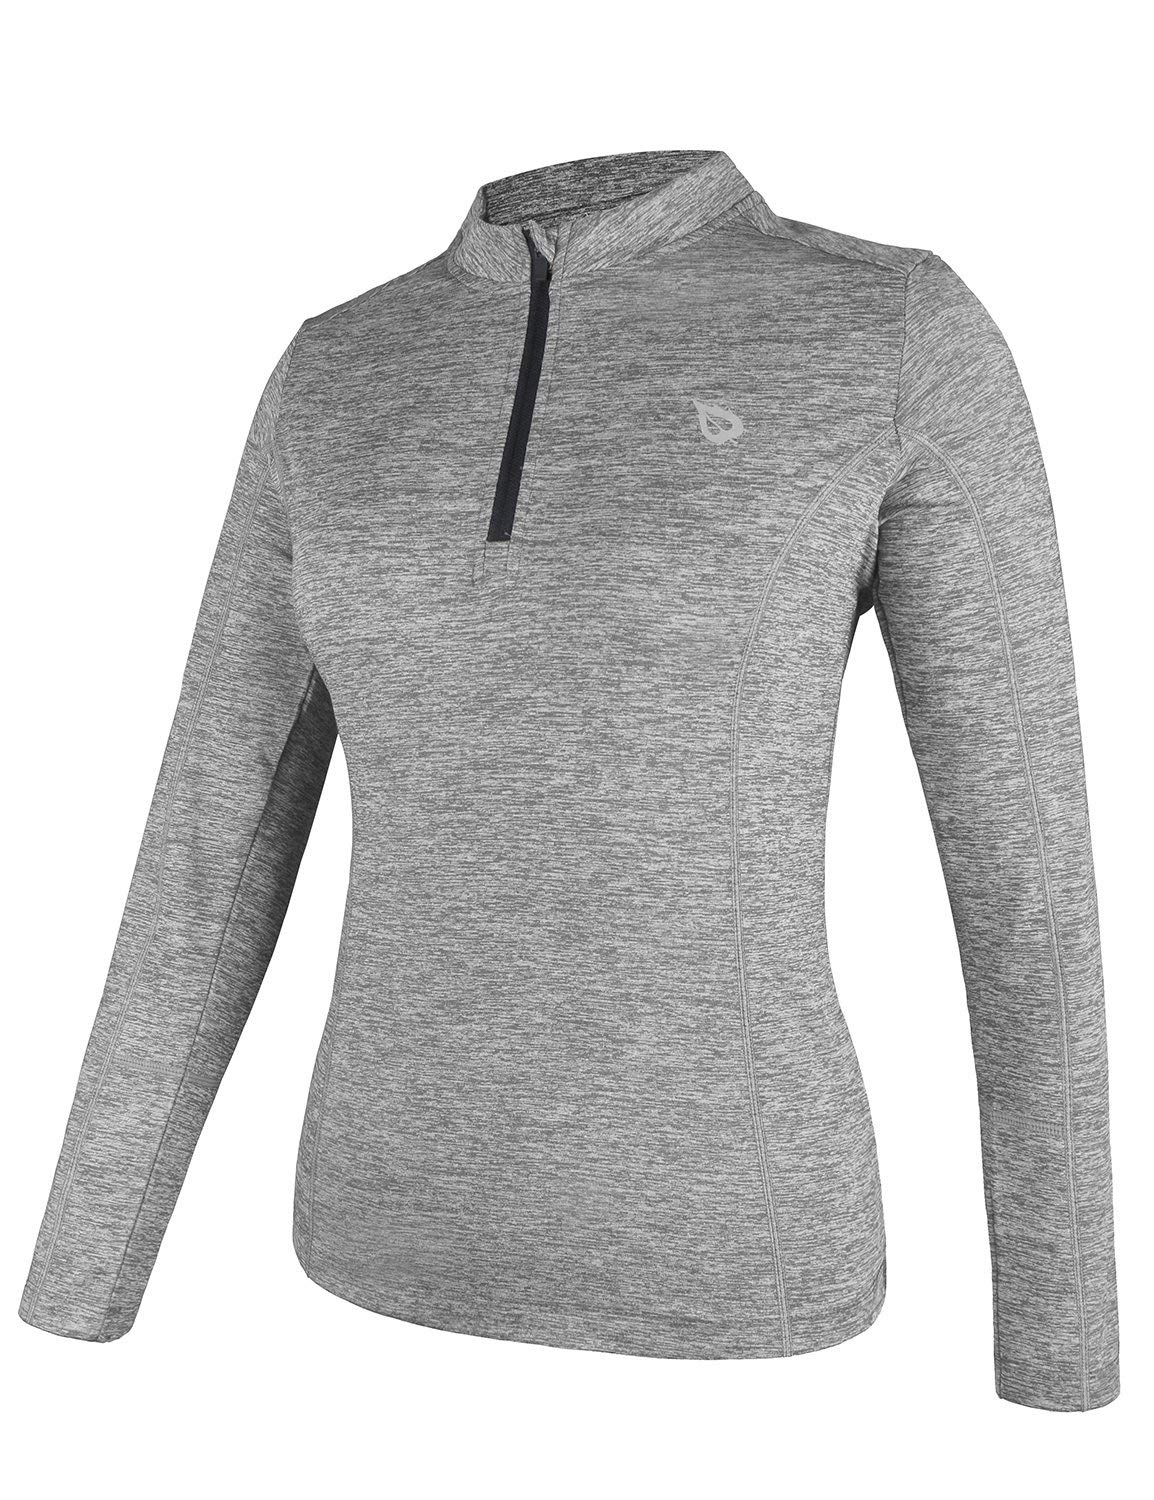 BALEAF Women's Thermal Running Shirts Long Sleeve 1/4 Zip Pullover Grey S by BALEAF